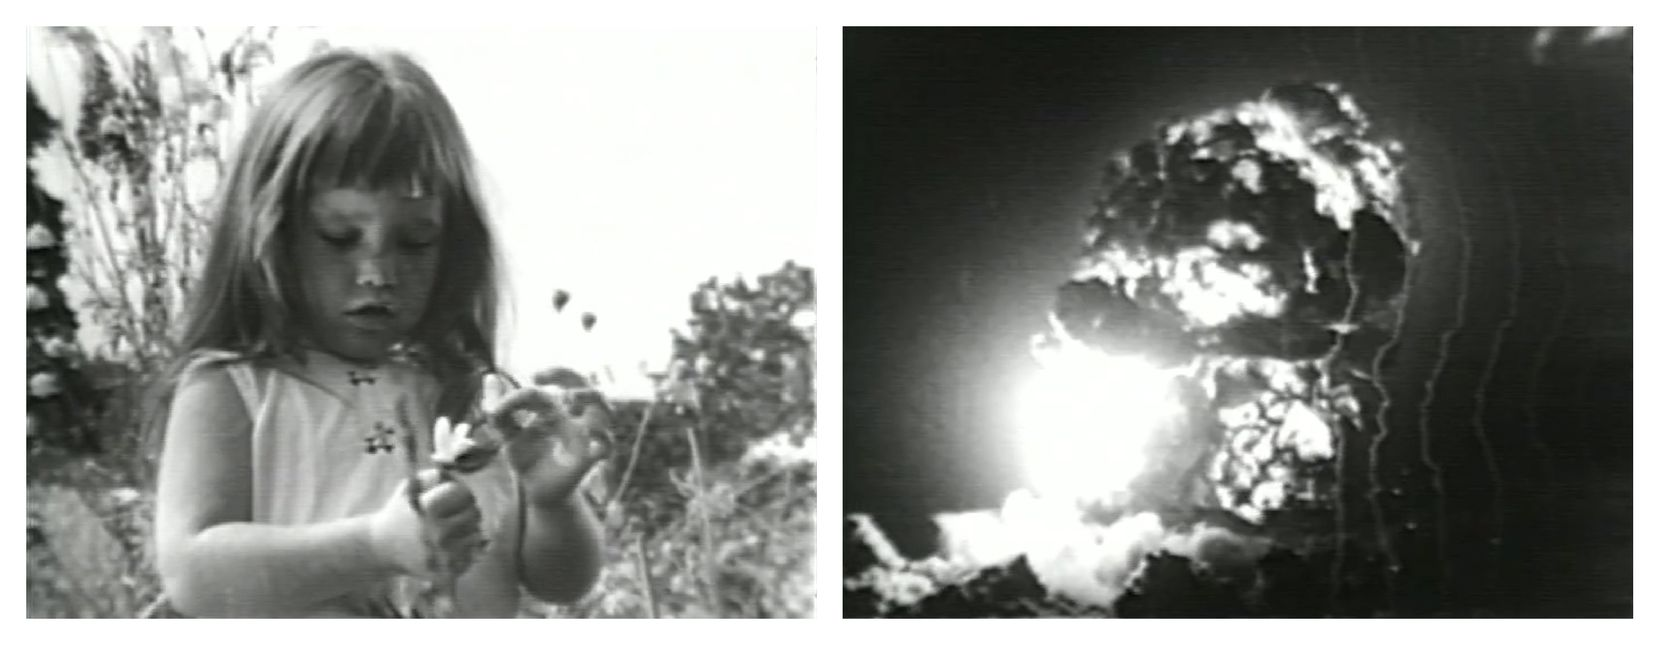 "Probably the most famous campaign commercial of all time, ""Daisy Girl"" – actually titled ""Peace, Little Girl"" – was made by the Democratic National Committee for President Lyndon B. Johnson in his race against Sen. Barry Goldwater. The ad juxtaposed a little girl plucking petals off a flower with a countdown to a nuclear explosion in an attempt to characterize Goldwater as an extremist who couldn't be trusted with America's national security. It aired only once as a paid ad, in September 1964."